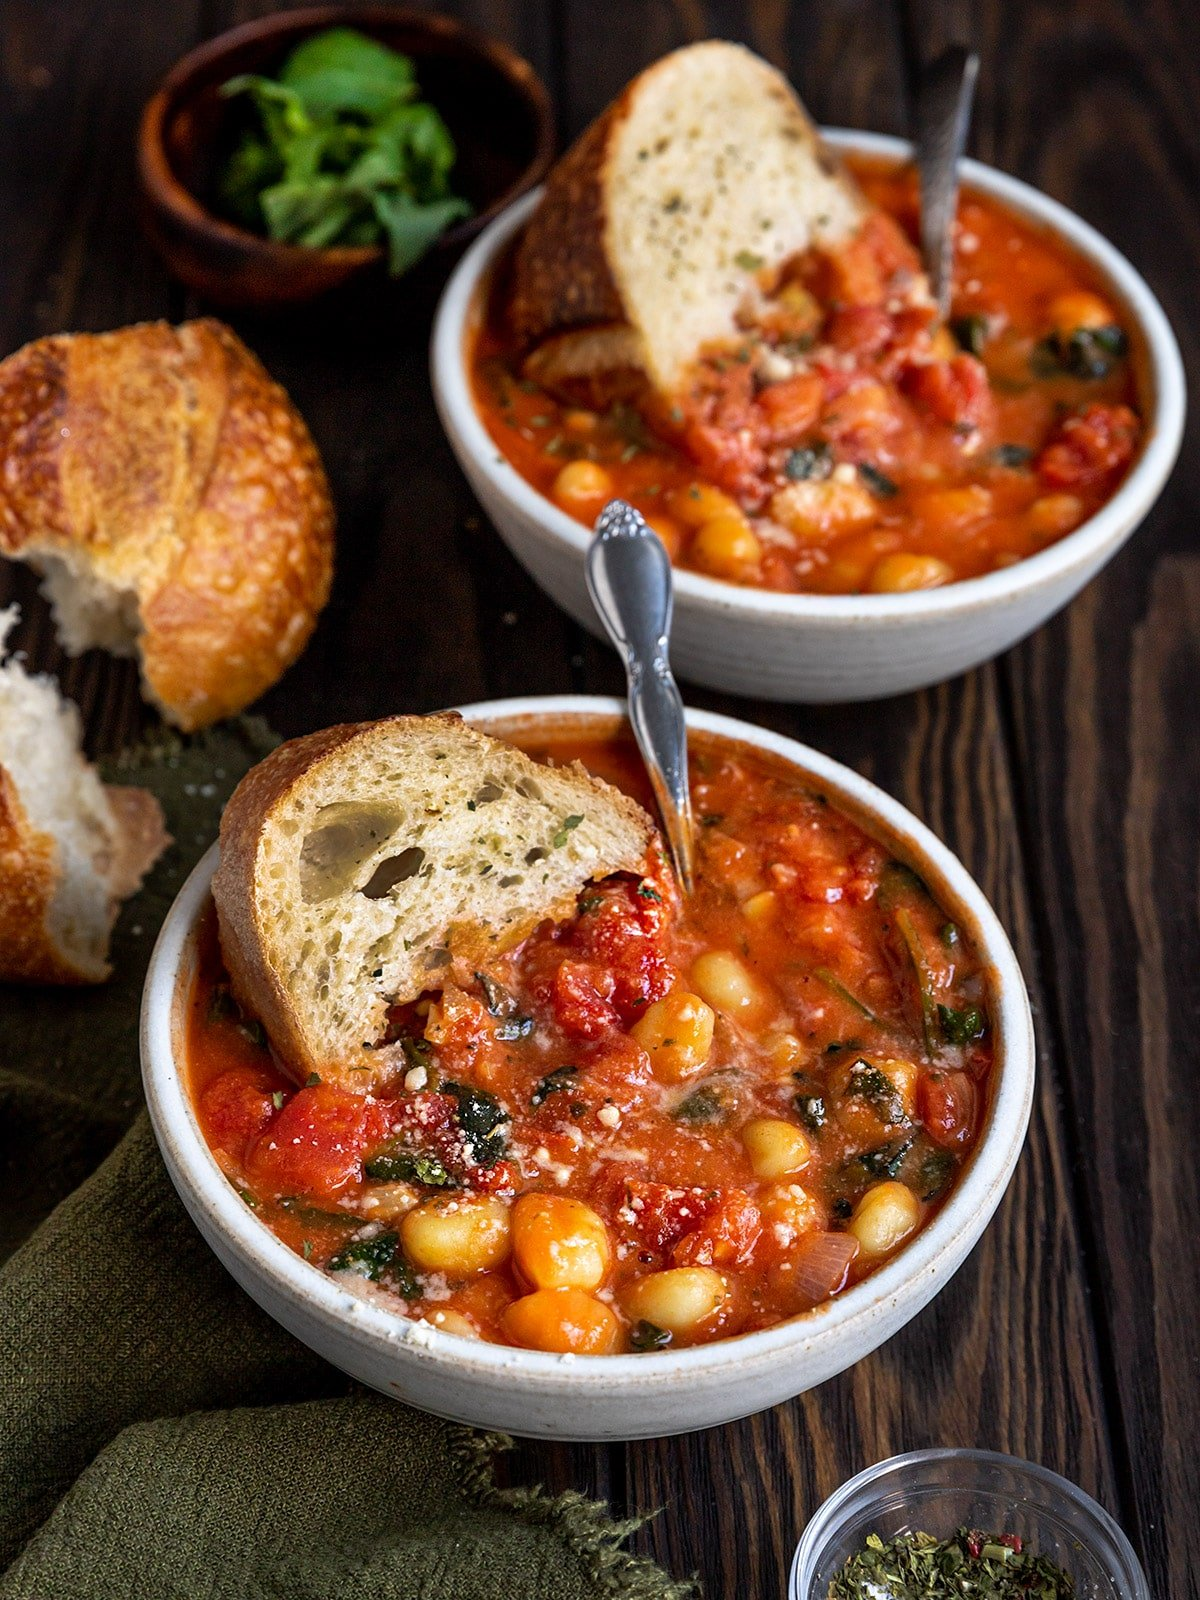 two bowls of soup filled with tomato, gnocchi, spinach, basil, and a piece of sourdough bread